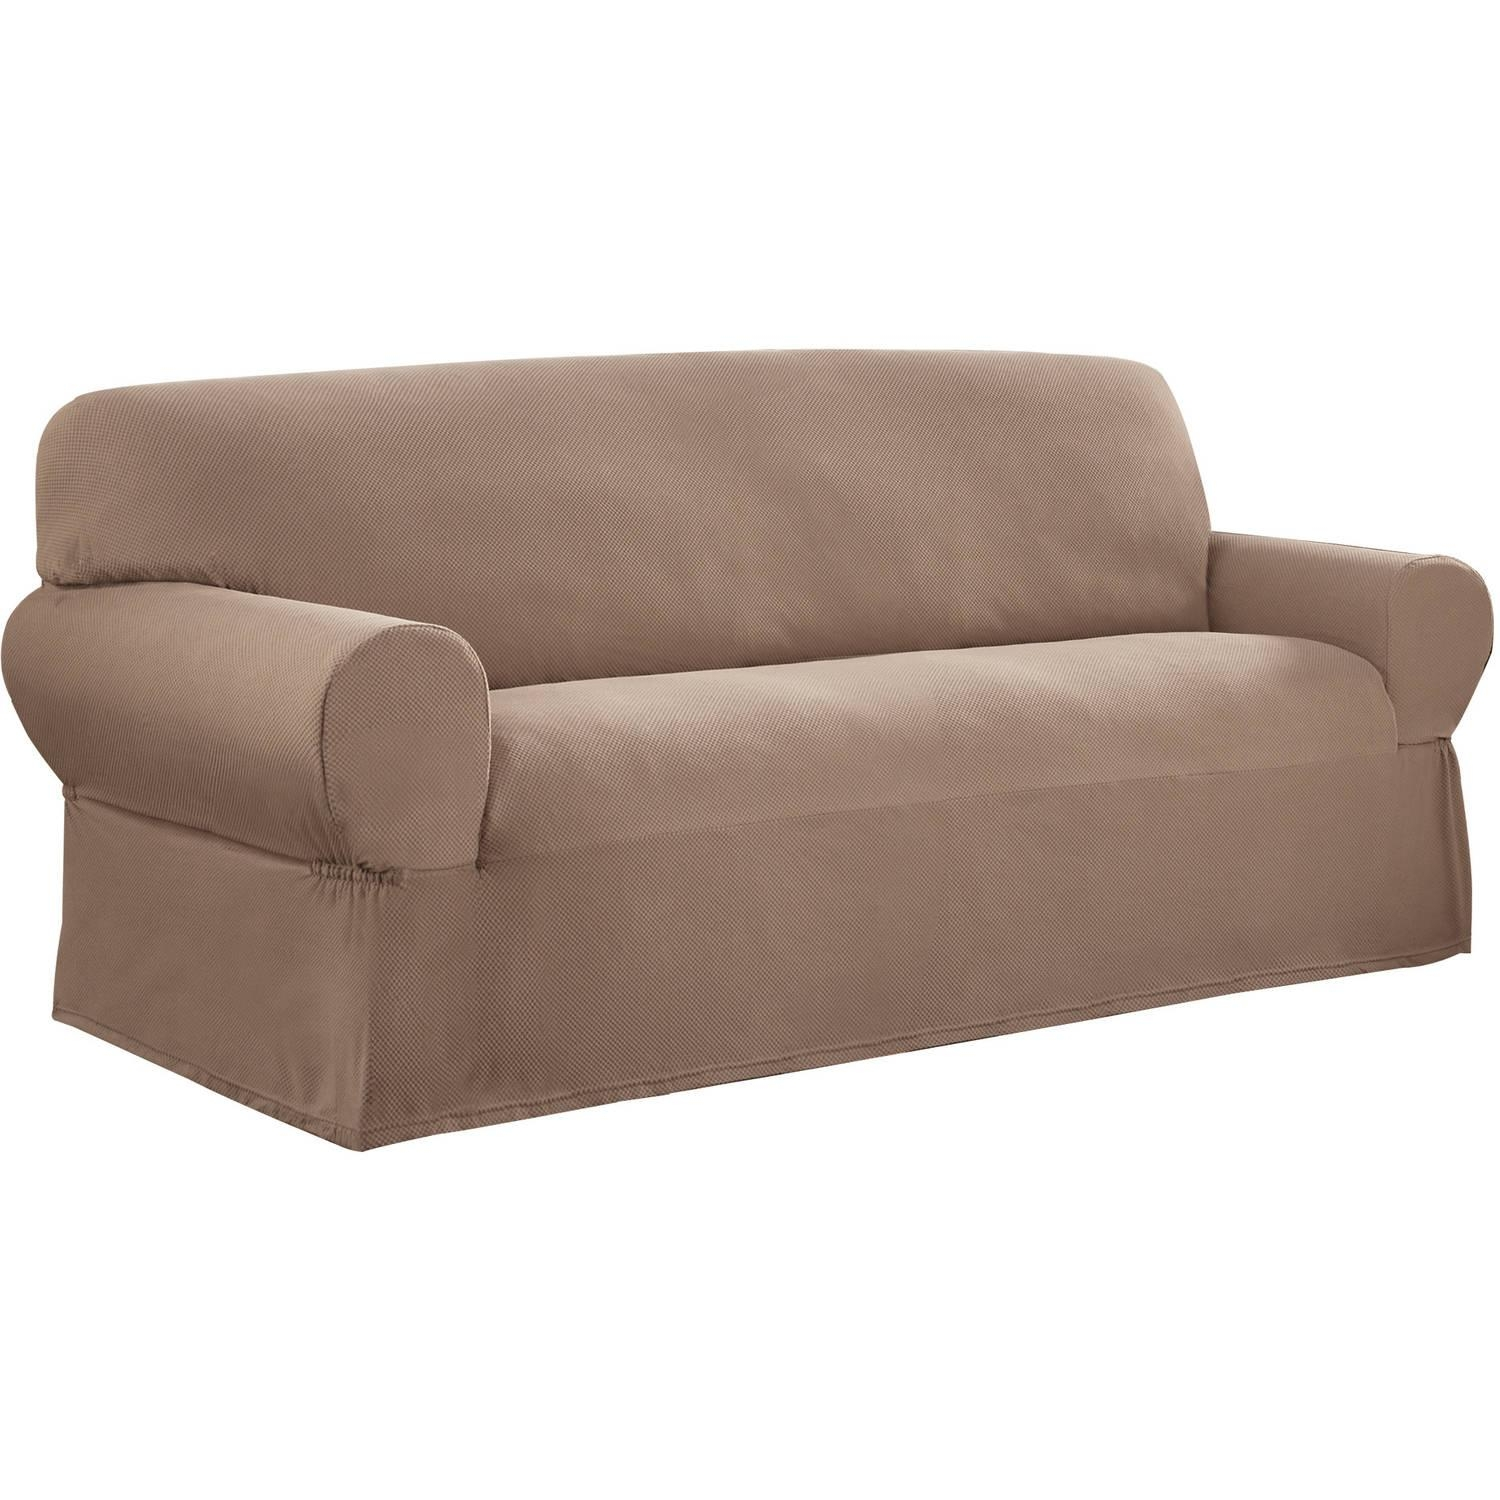 Sofas : Wonderful Slip Covers For Sofa Oversized Sofa Covers Sofa With Large Sofa Slipcovers (View 8 of 23)